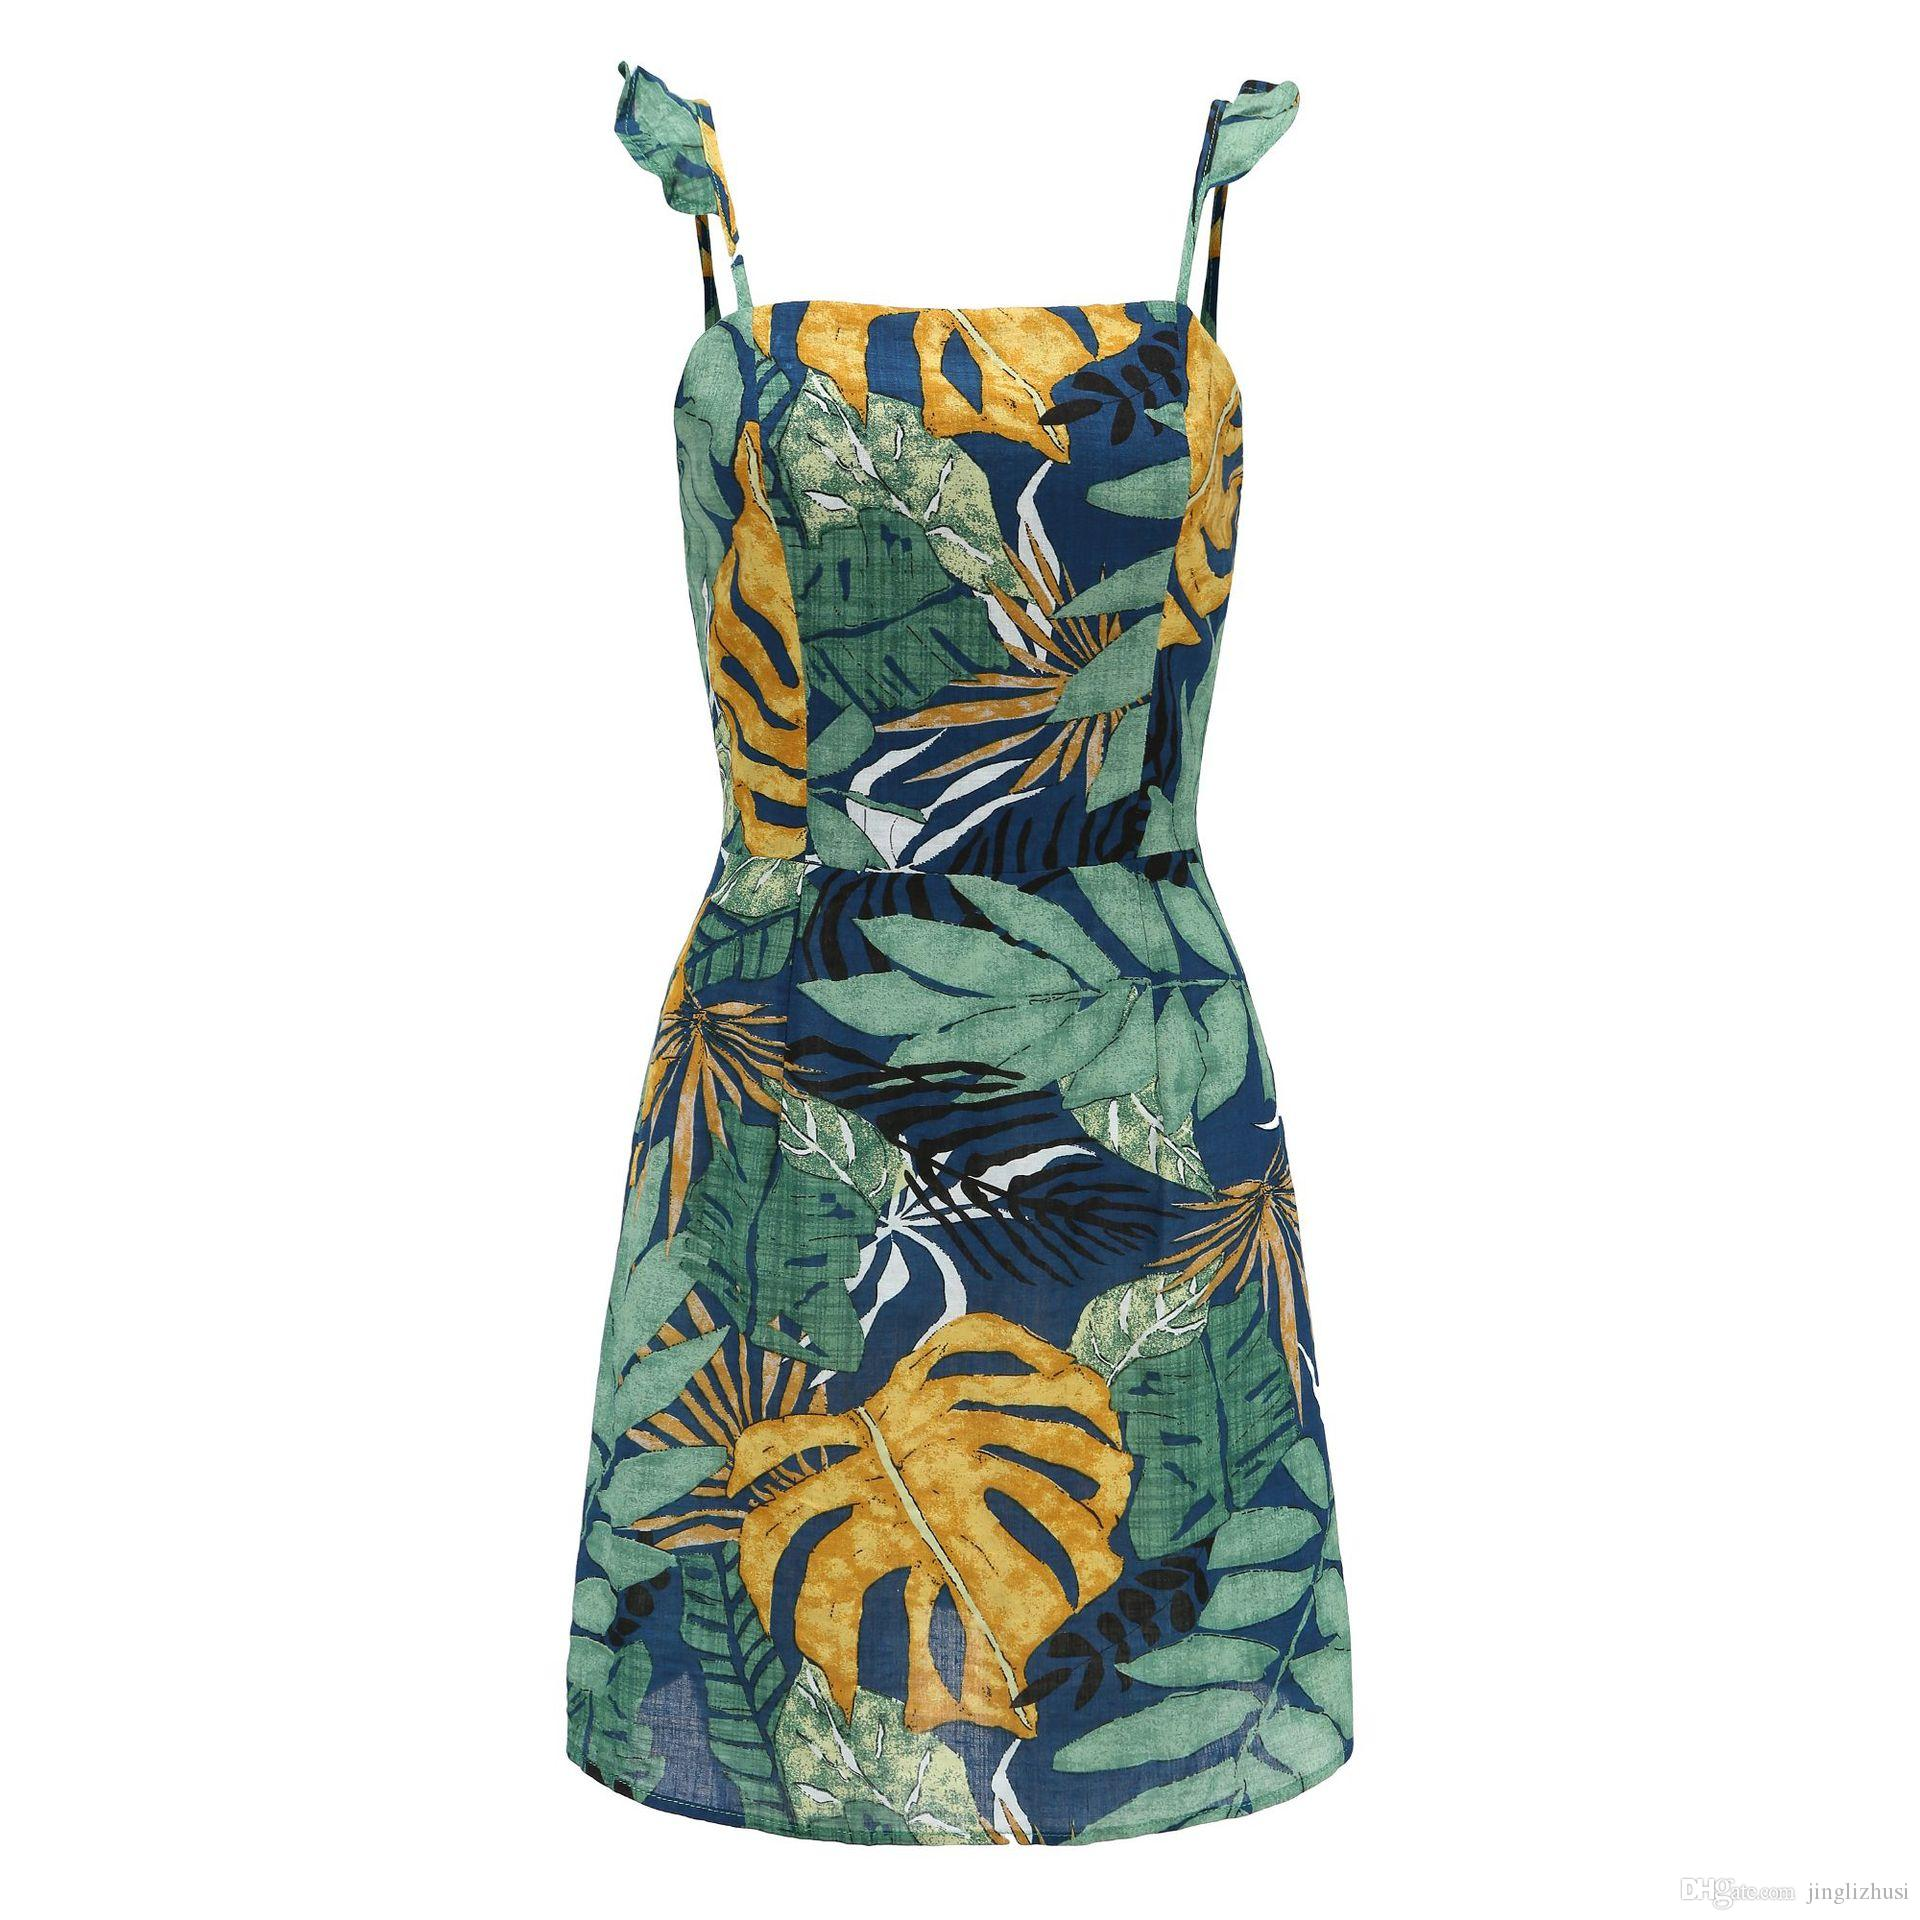 Add Summer Strap Print Floral Mini Boho Bohemian Beach Dress Women Sundress Sexy Casual Vintage Ladies Dress